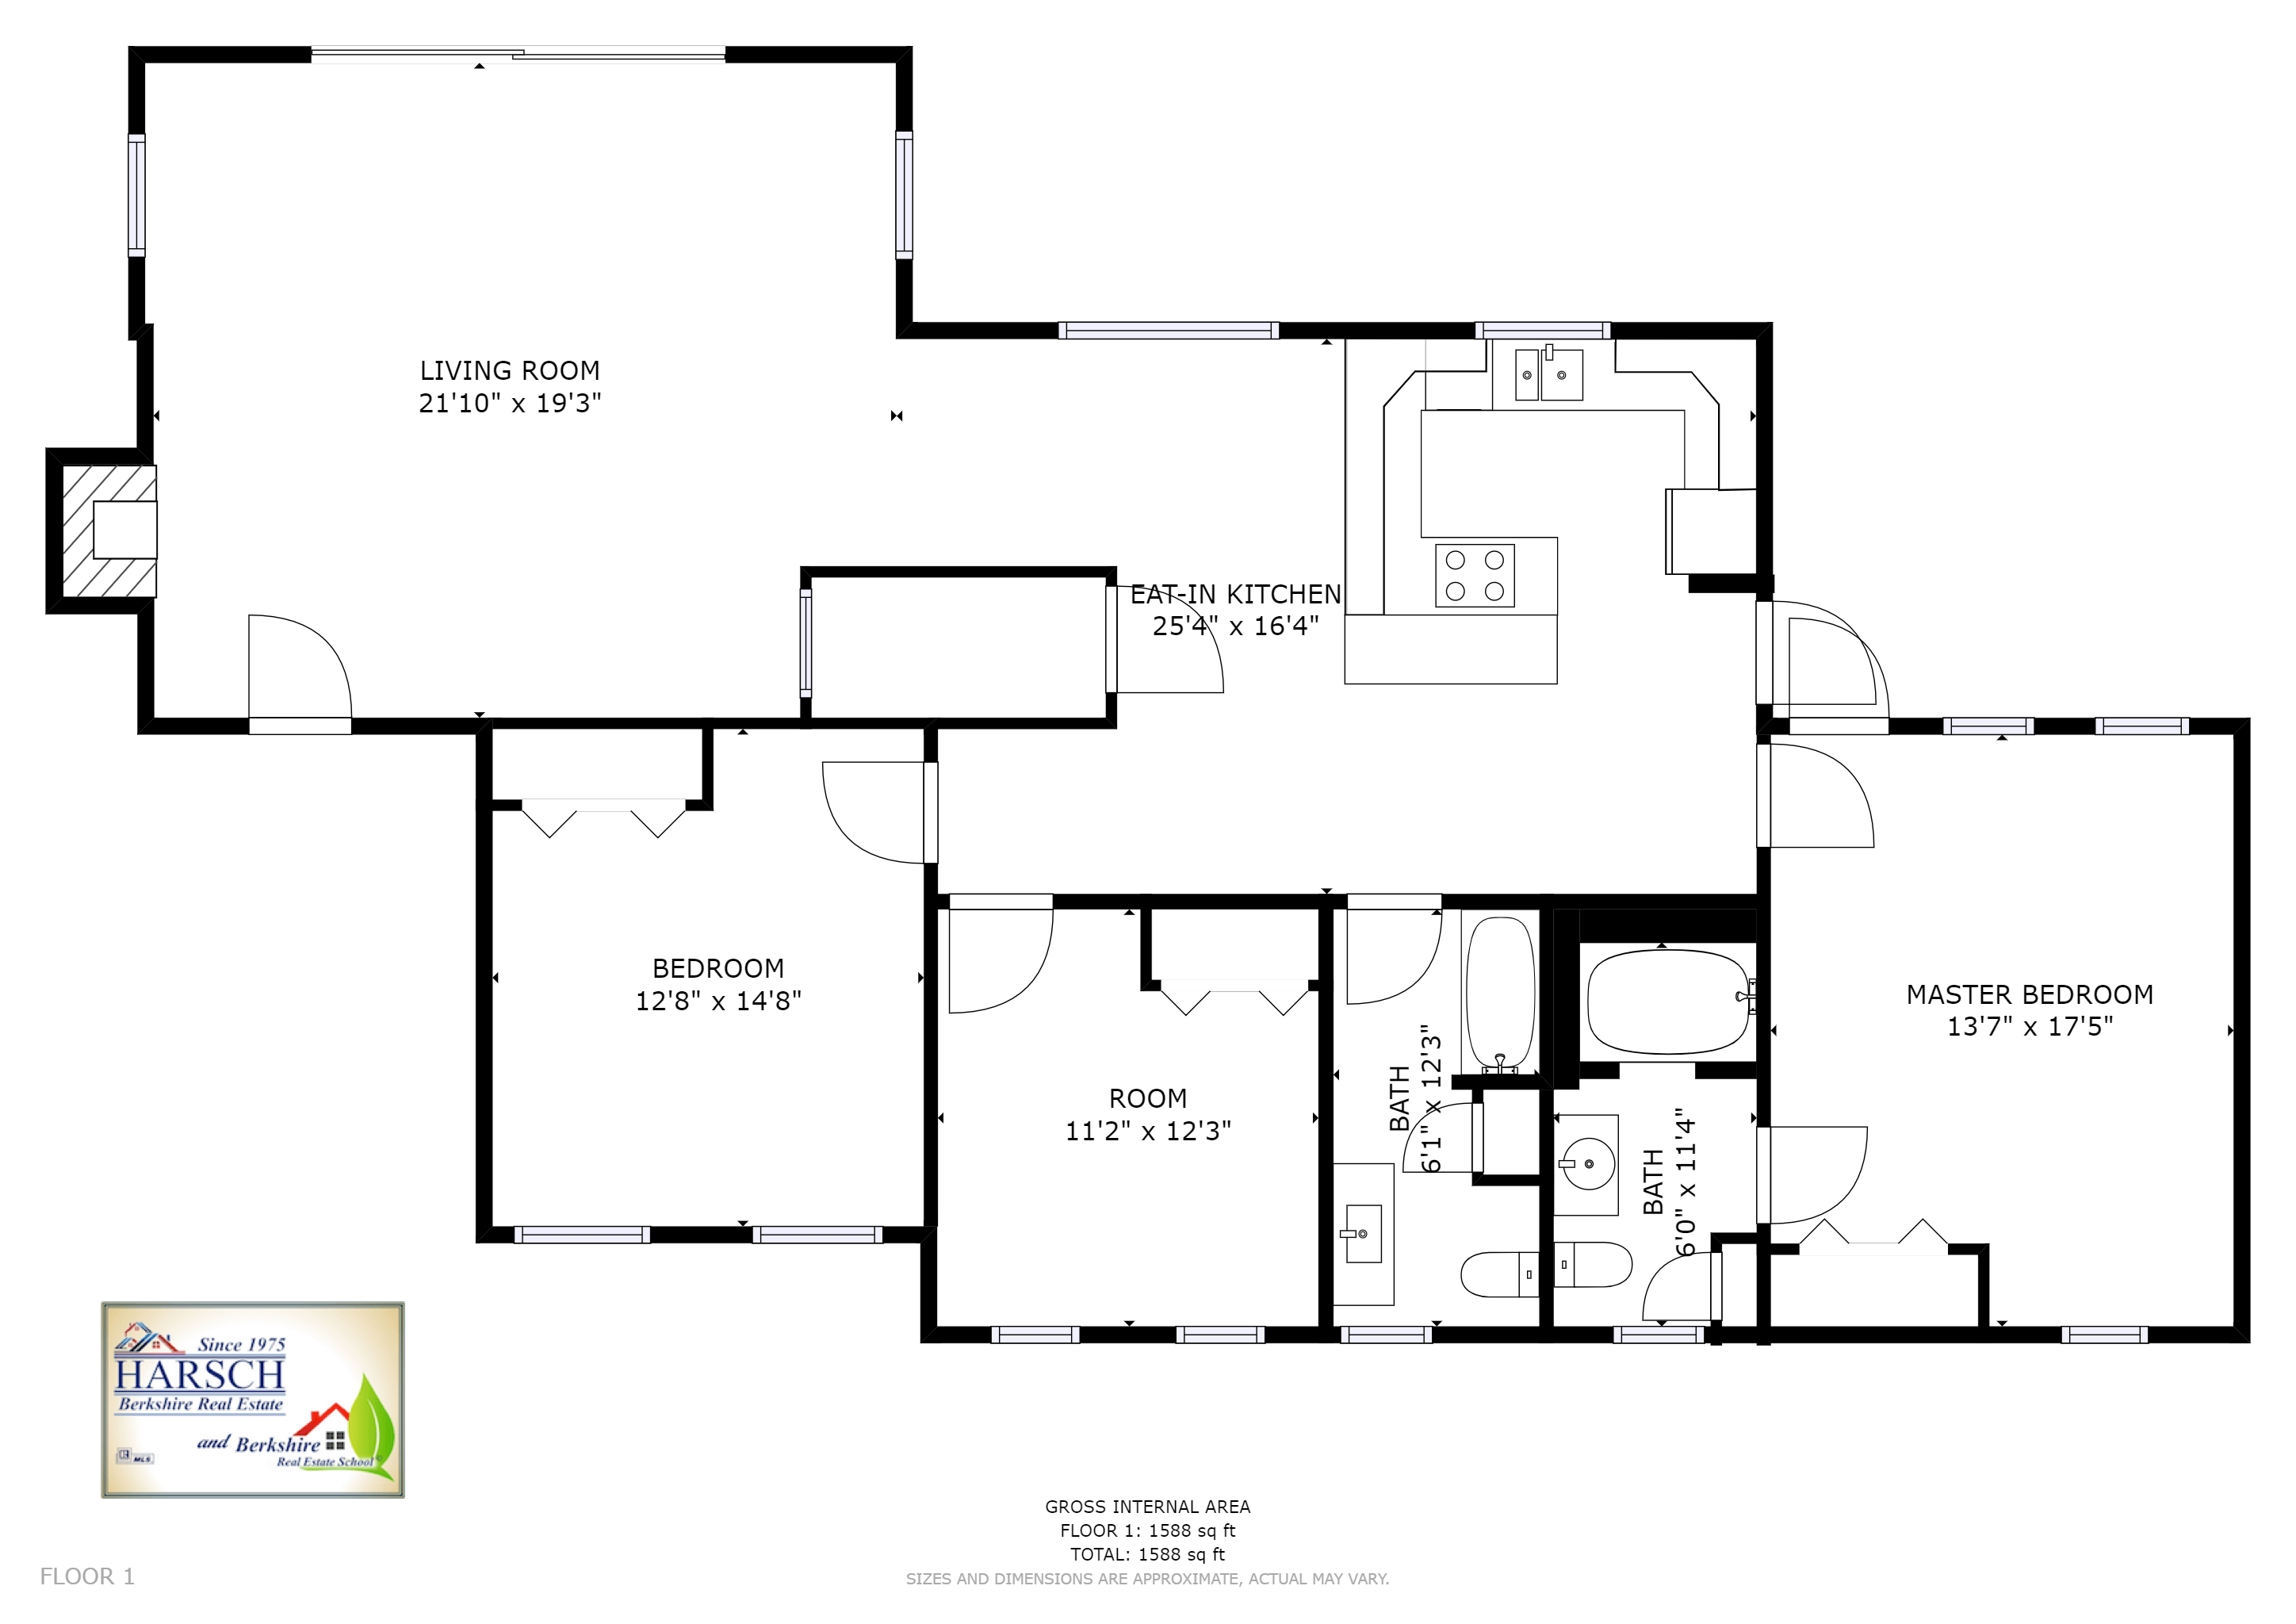 North Adams MA Floor Plan for 81 George Ave with Virtual Tour Link